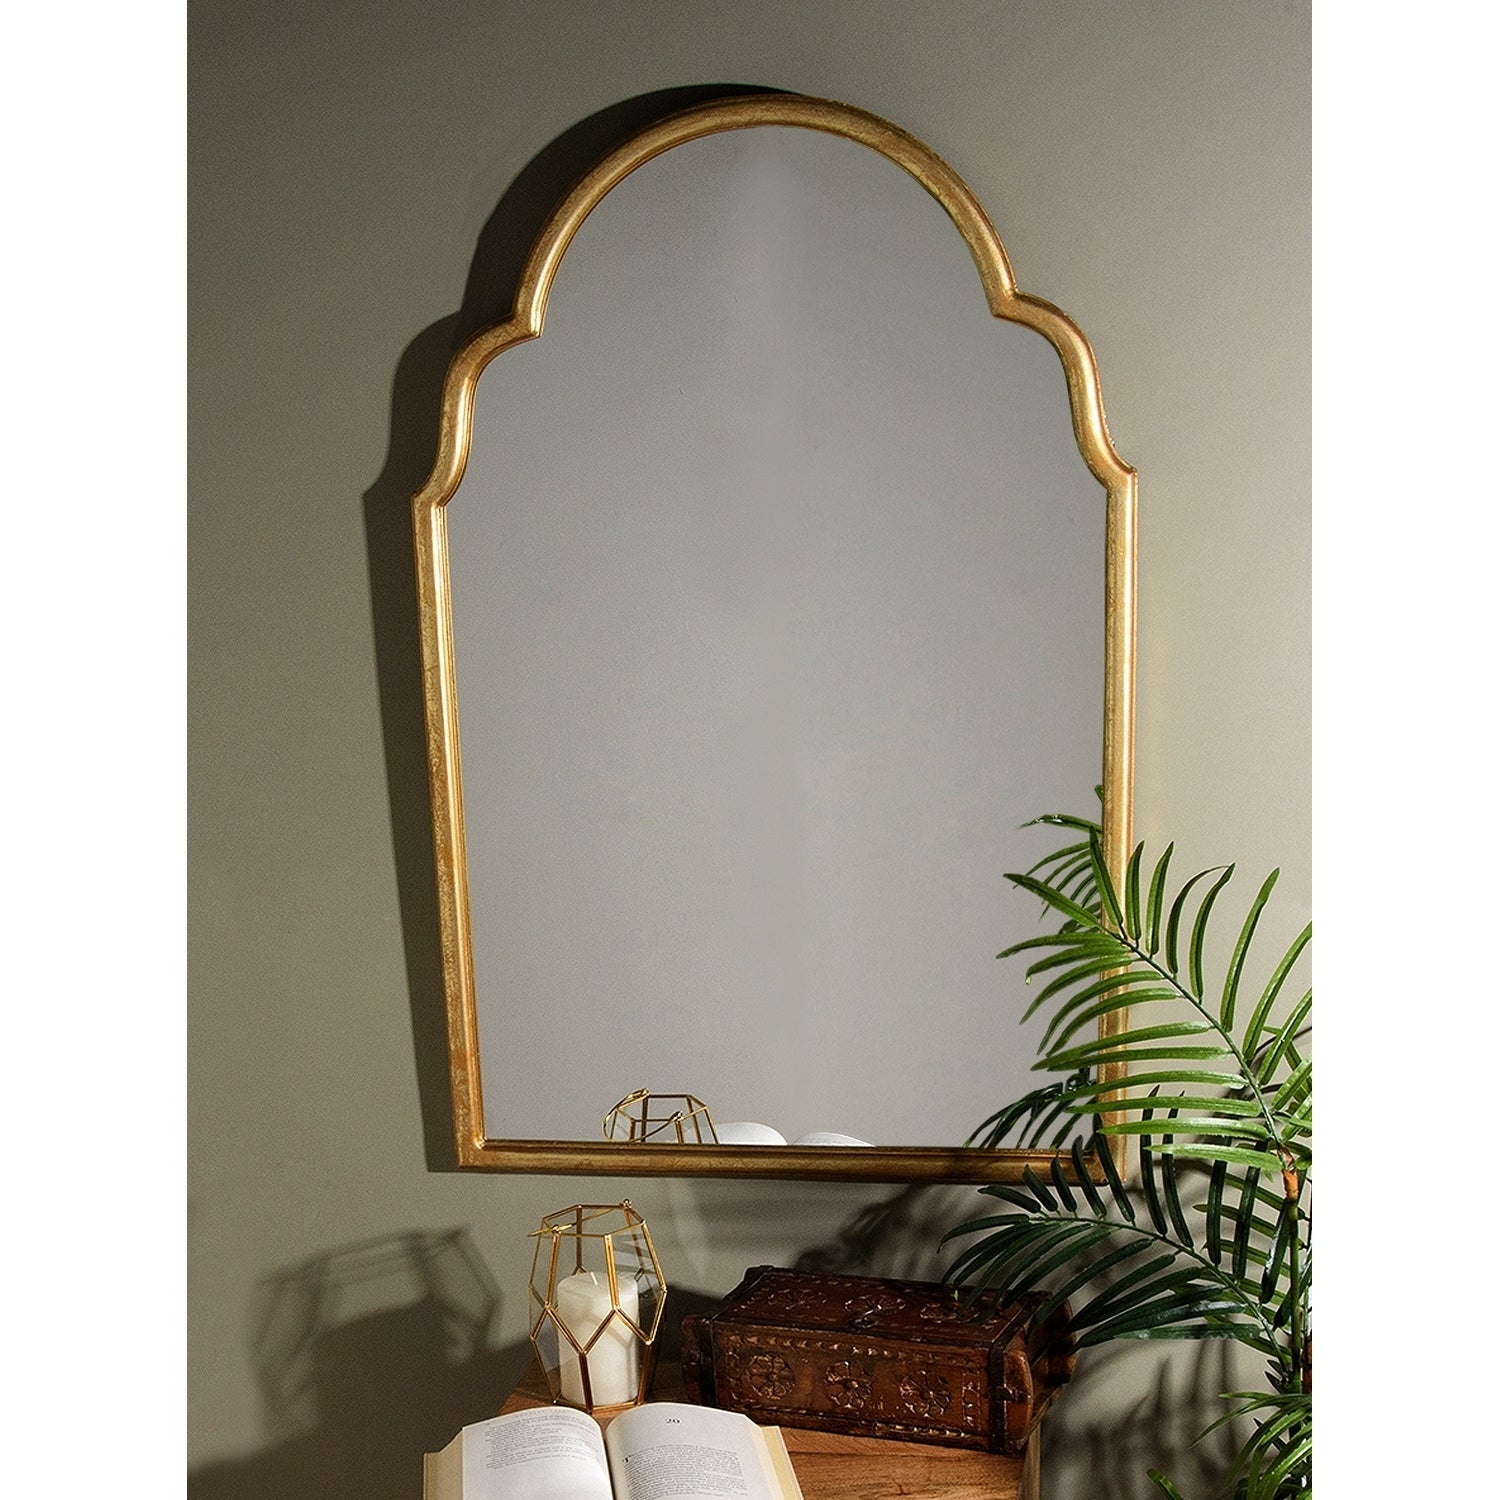 Apprehensive Antique Wooden Wall Hanging Mirror Antique Furniture Great Vintage Condition Online Discount